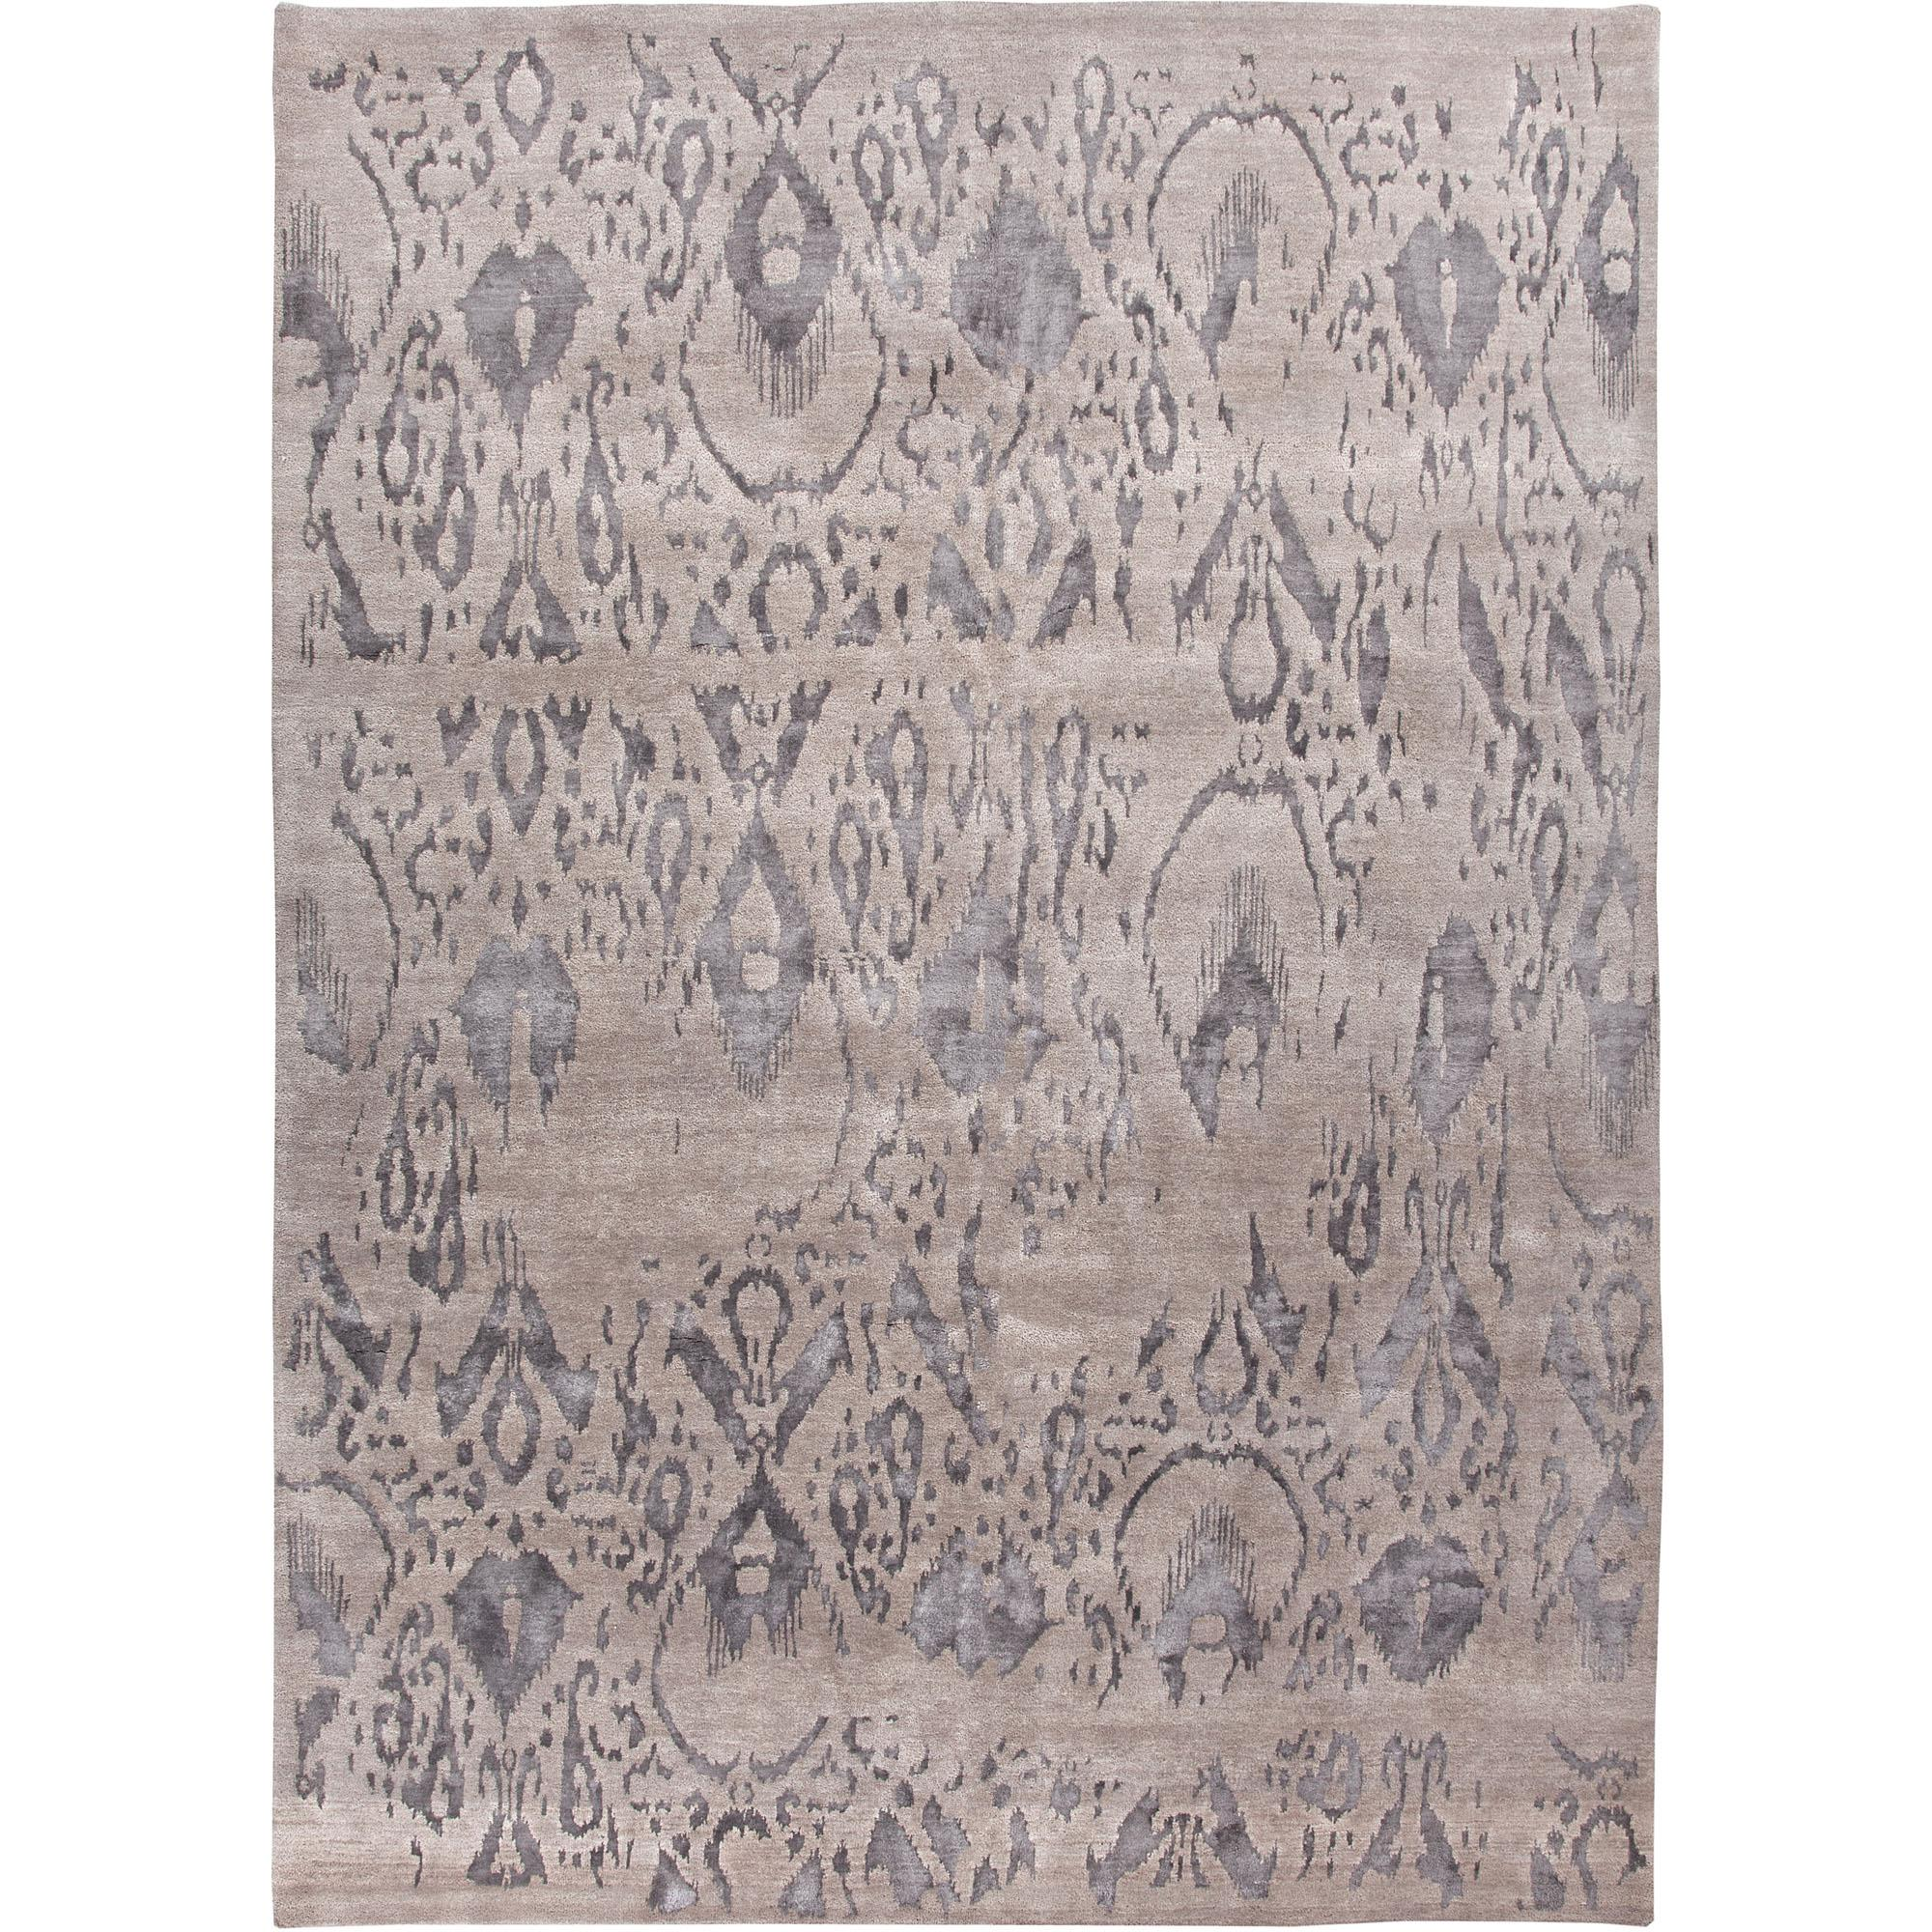 JAIPUR Rugs Connextion By Jenny Jones-global 9 x 12 Rug - Item Number: RUG100996